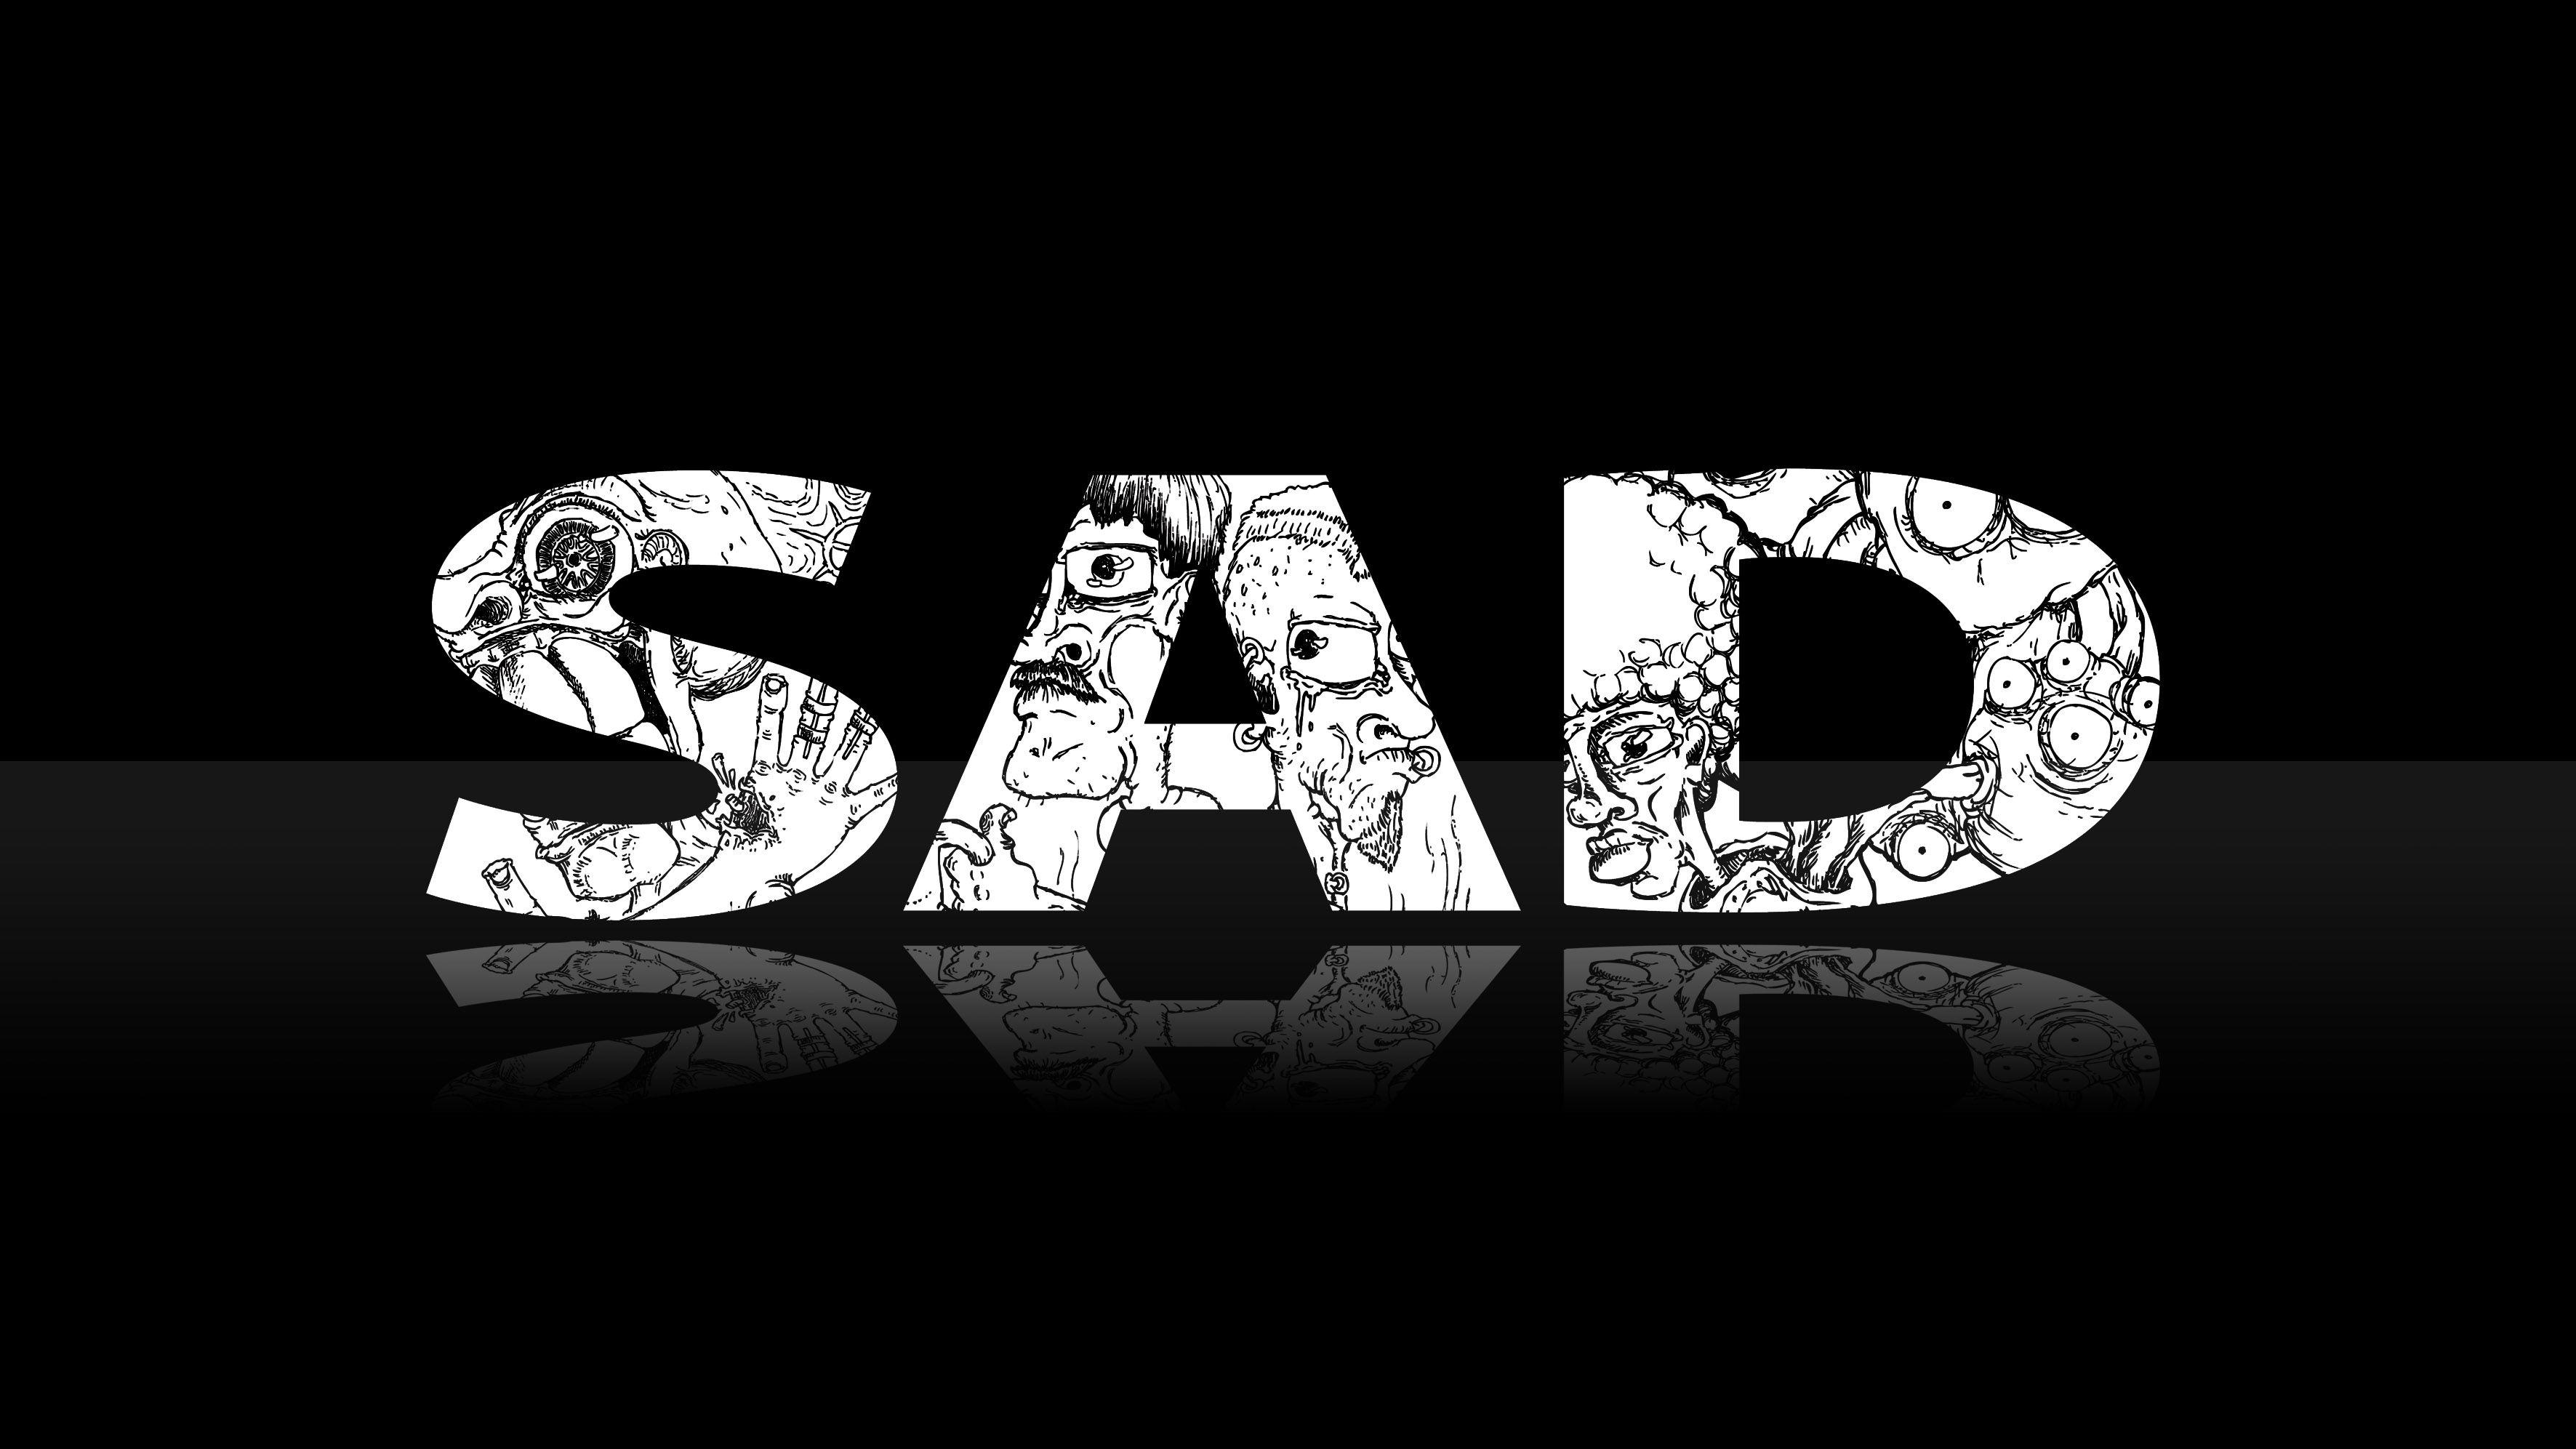 New Sad Logos Wallpapers Wallpaper Cave